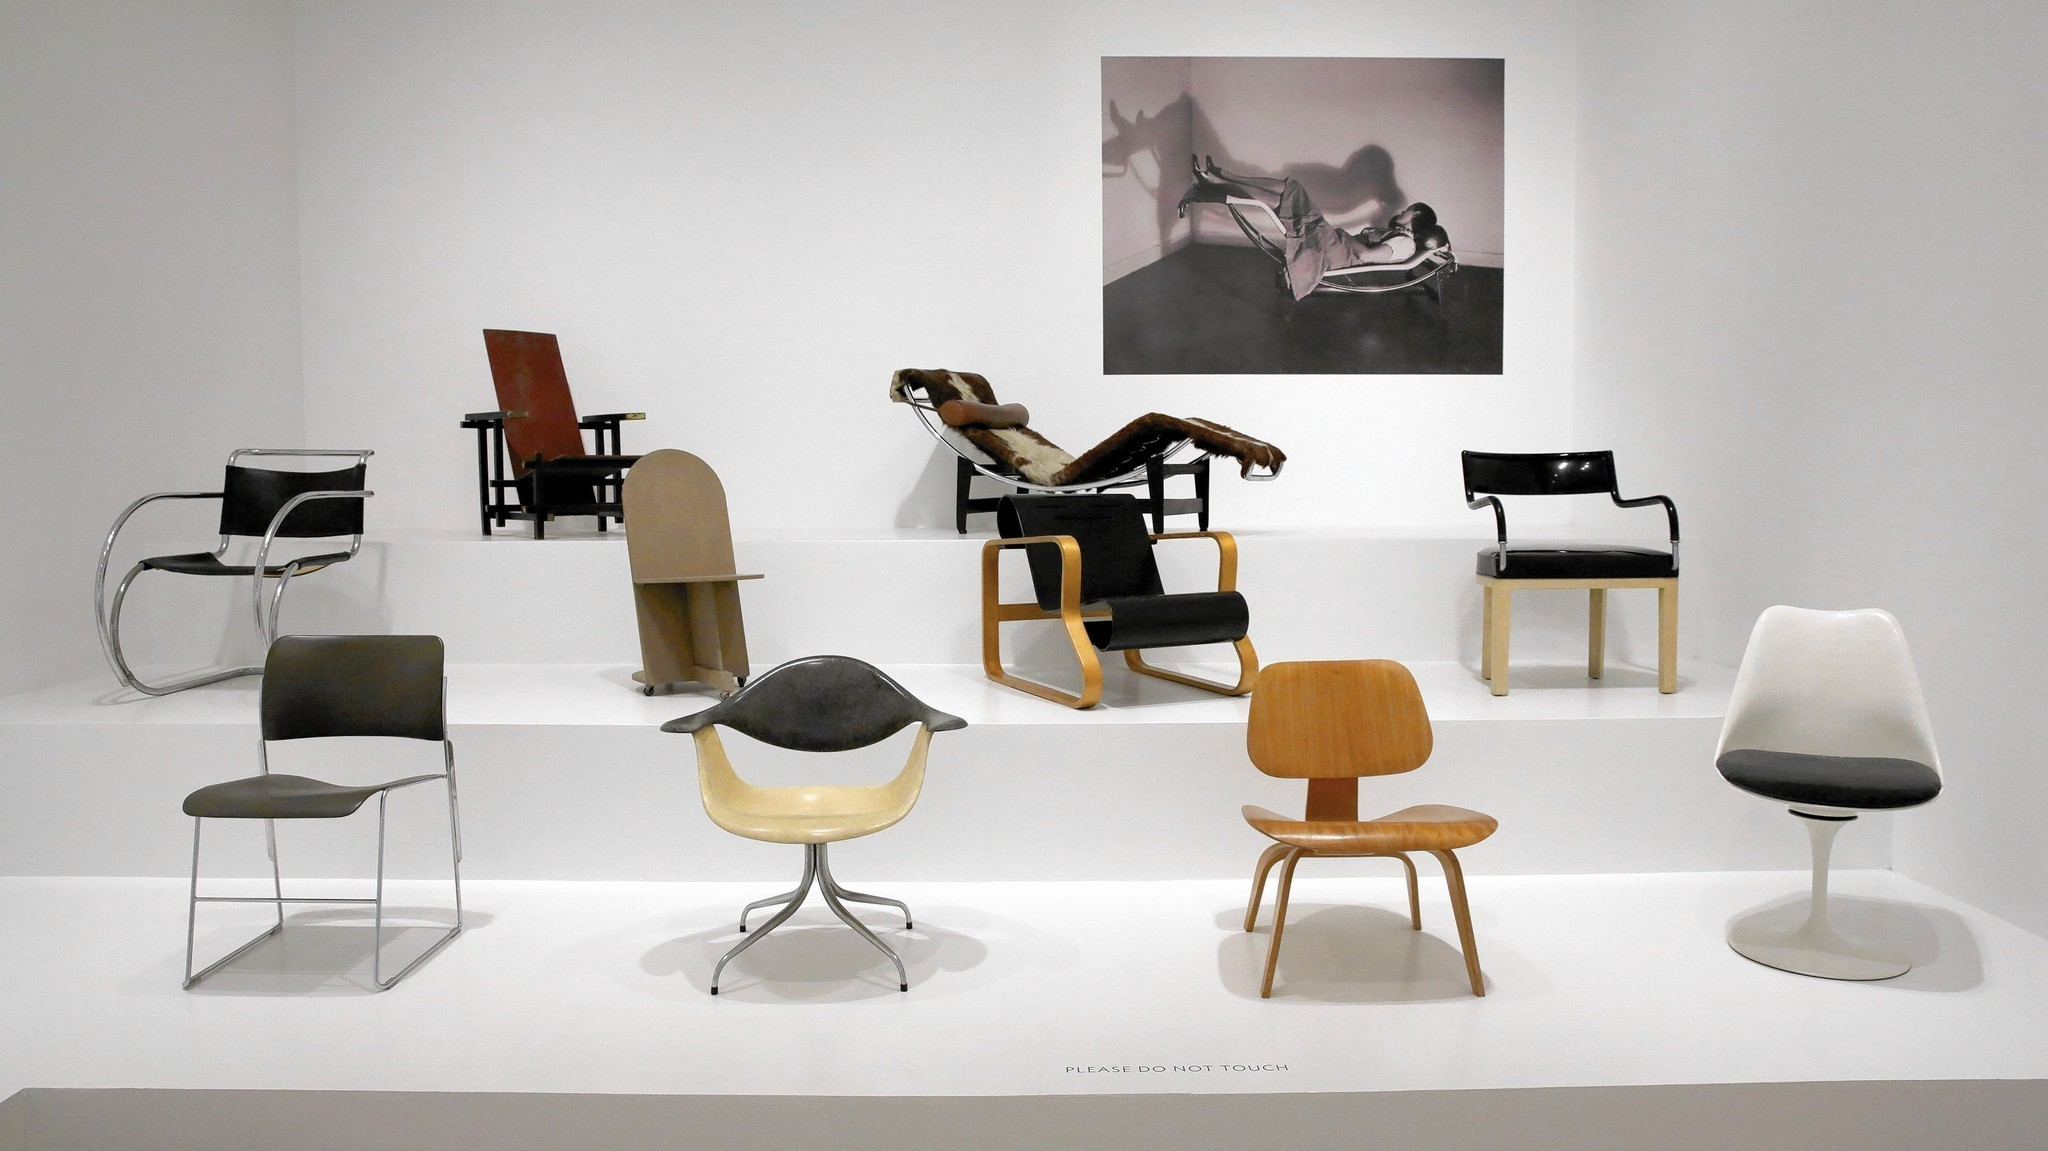 A Small Show About Chairs Hints At Larger Design Ambitions